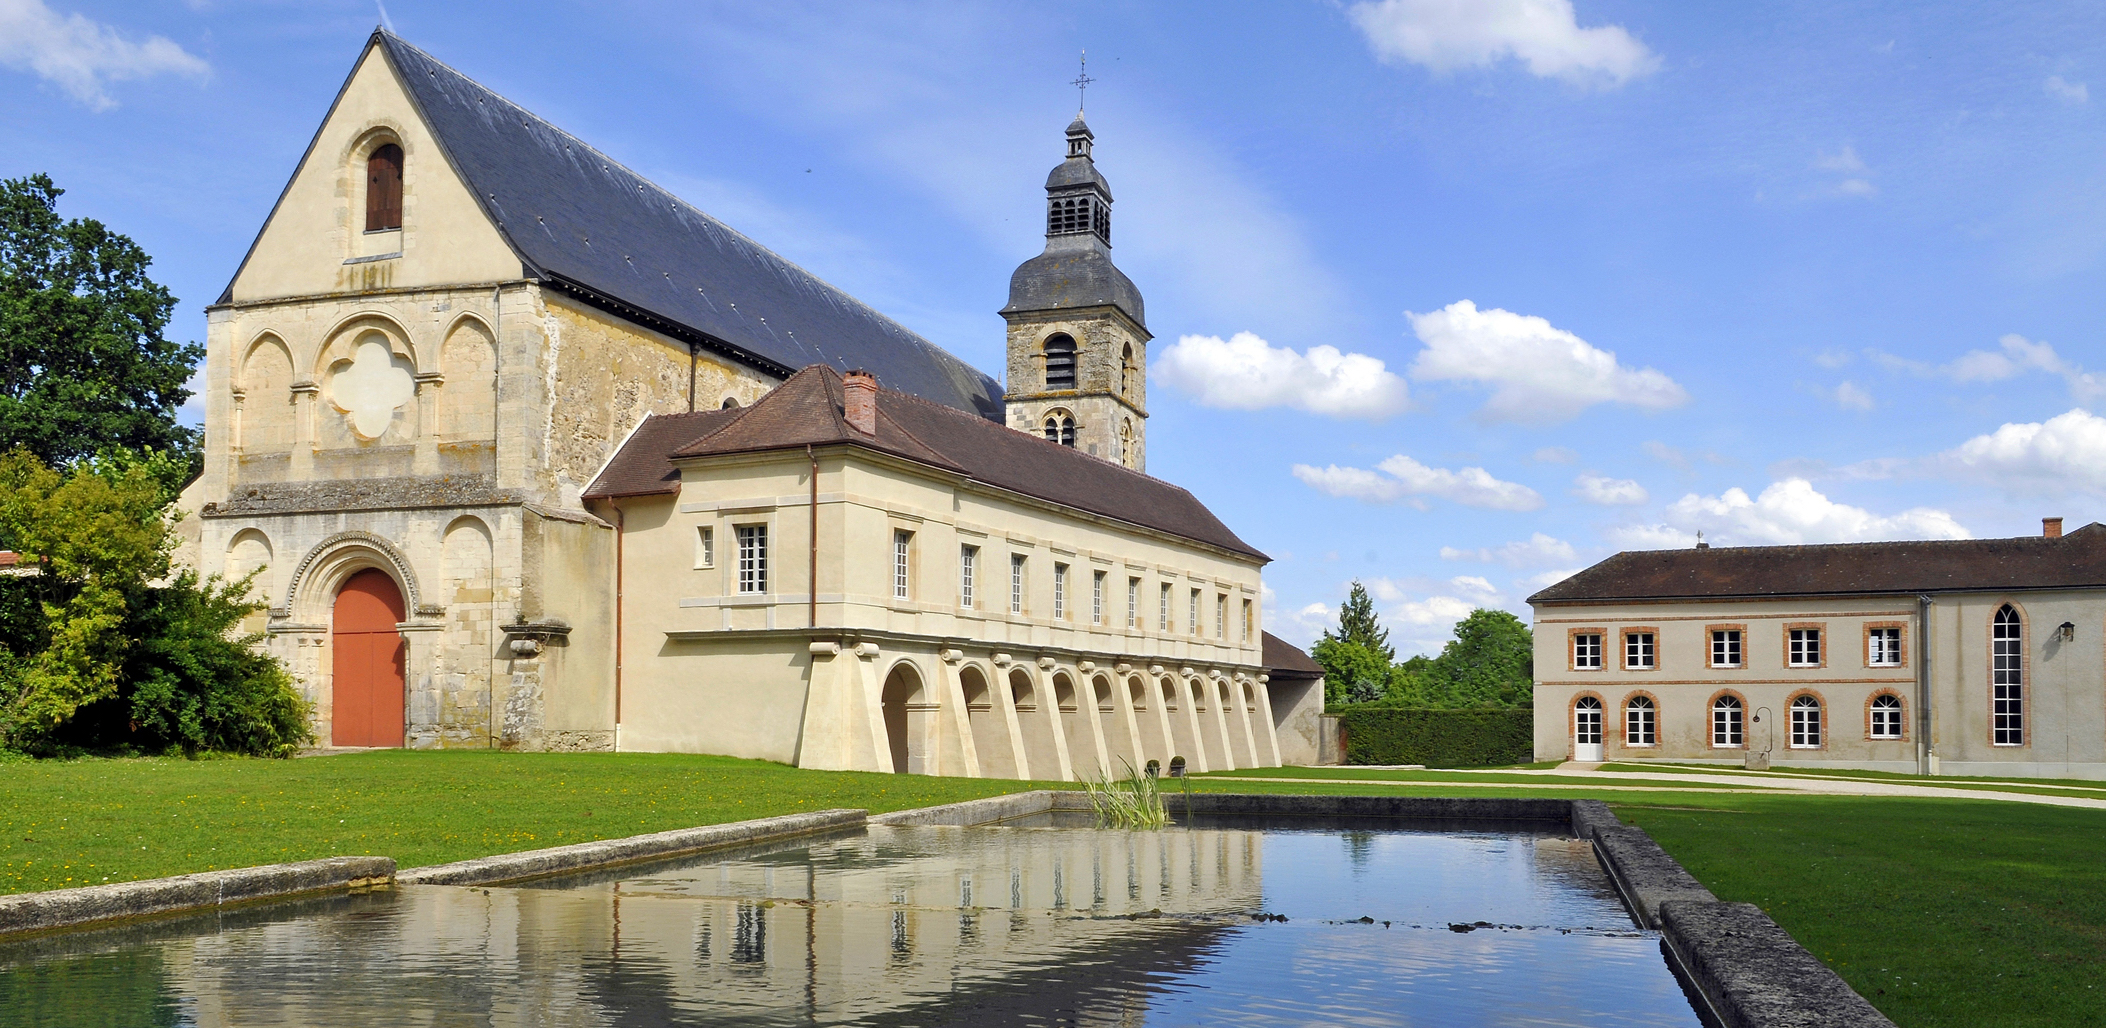 Benedictine abbey in Hautvillers